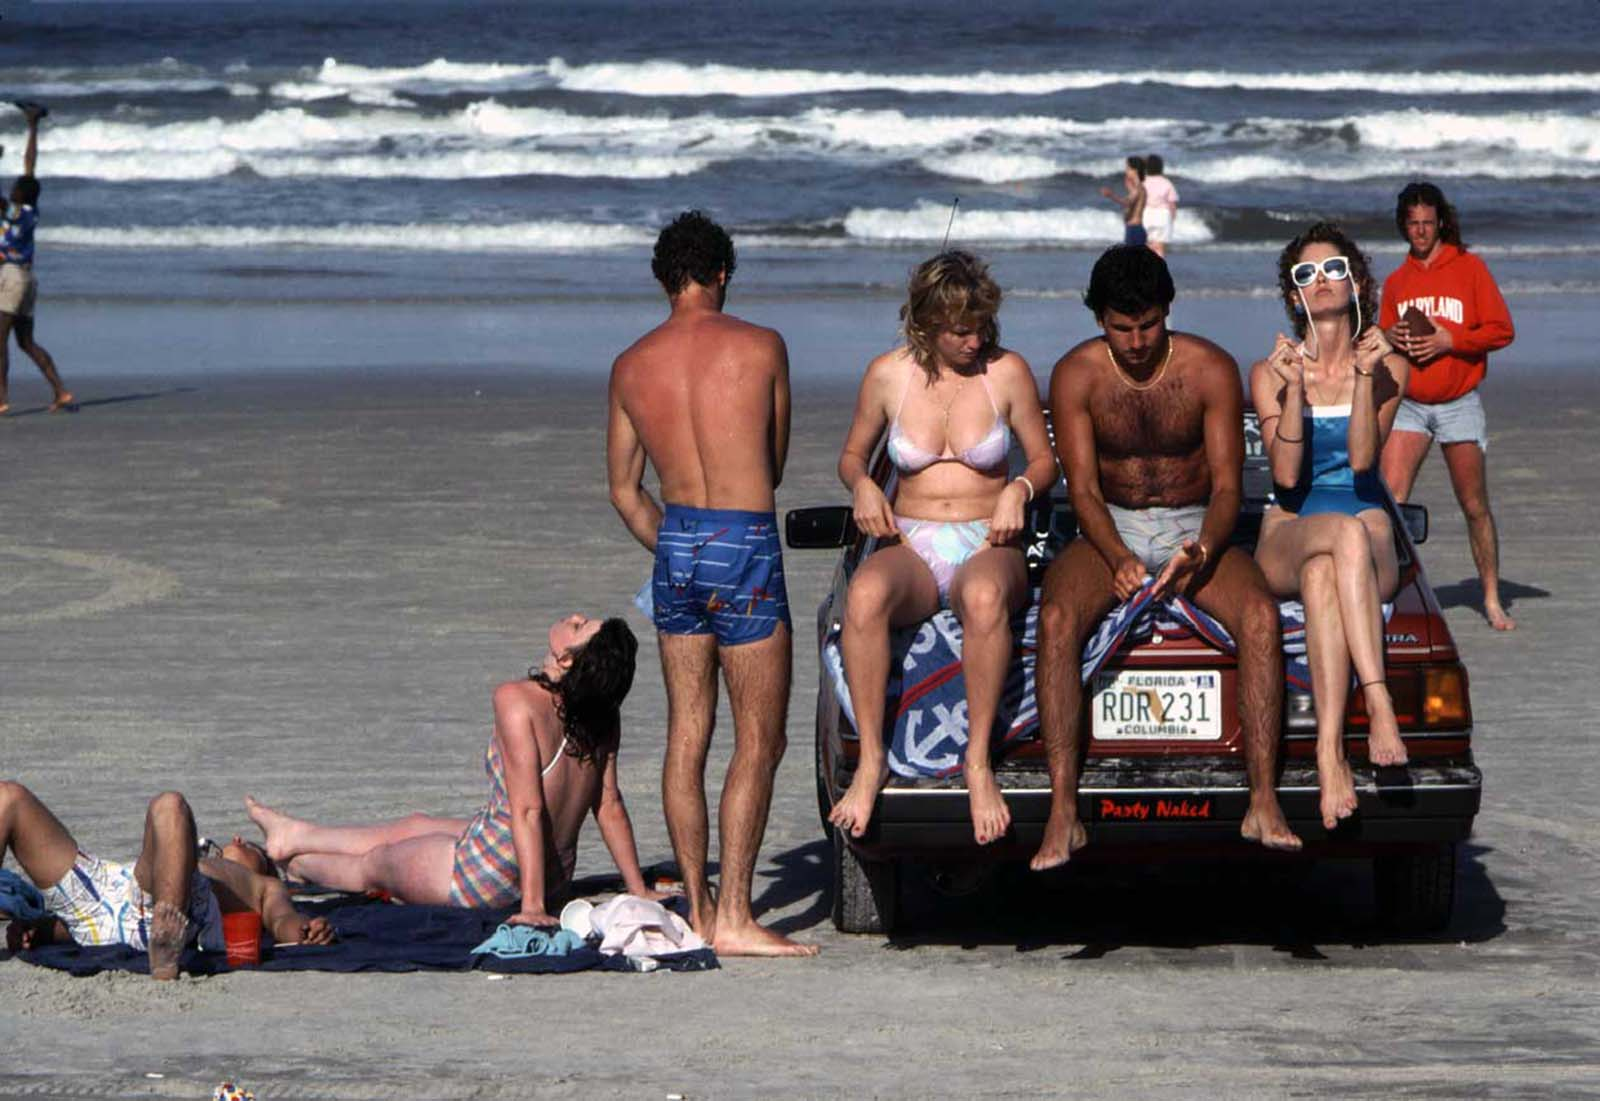 On the trunk at Daytona. 1986.